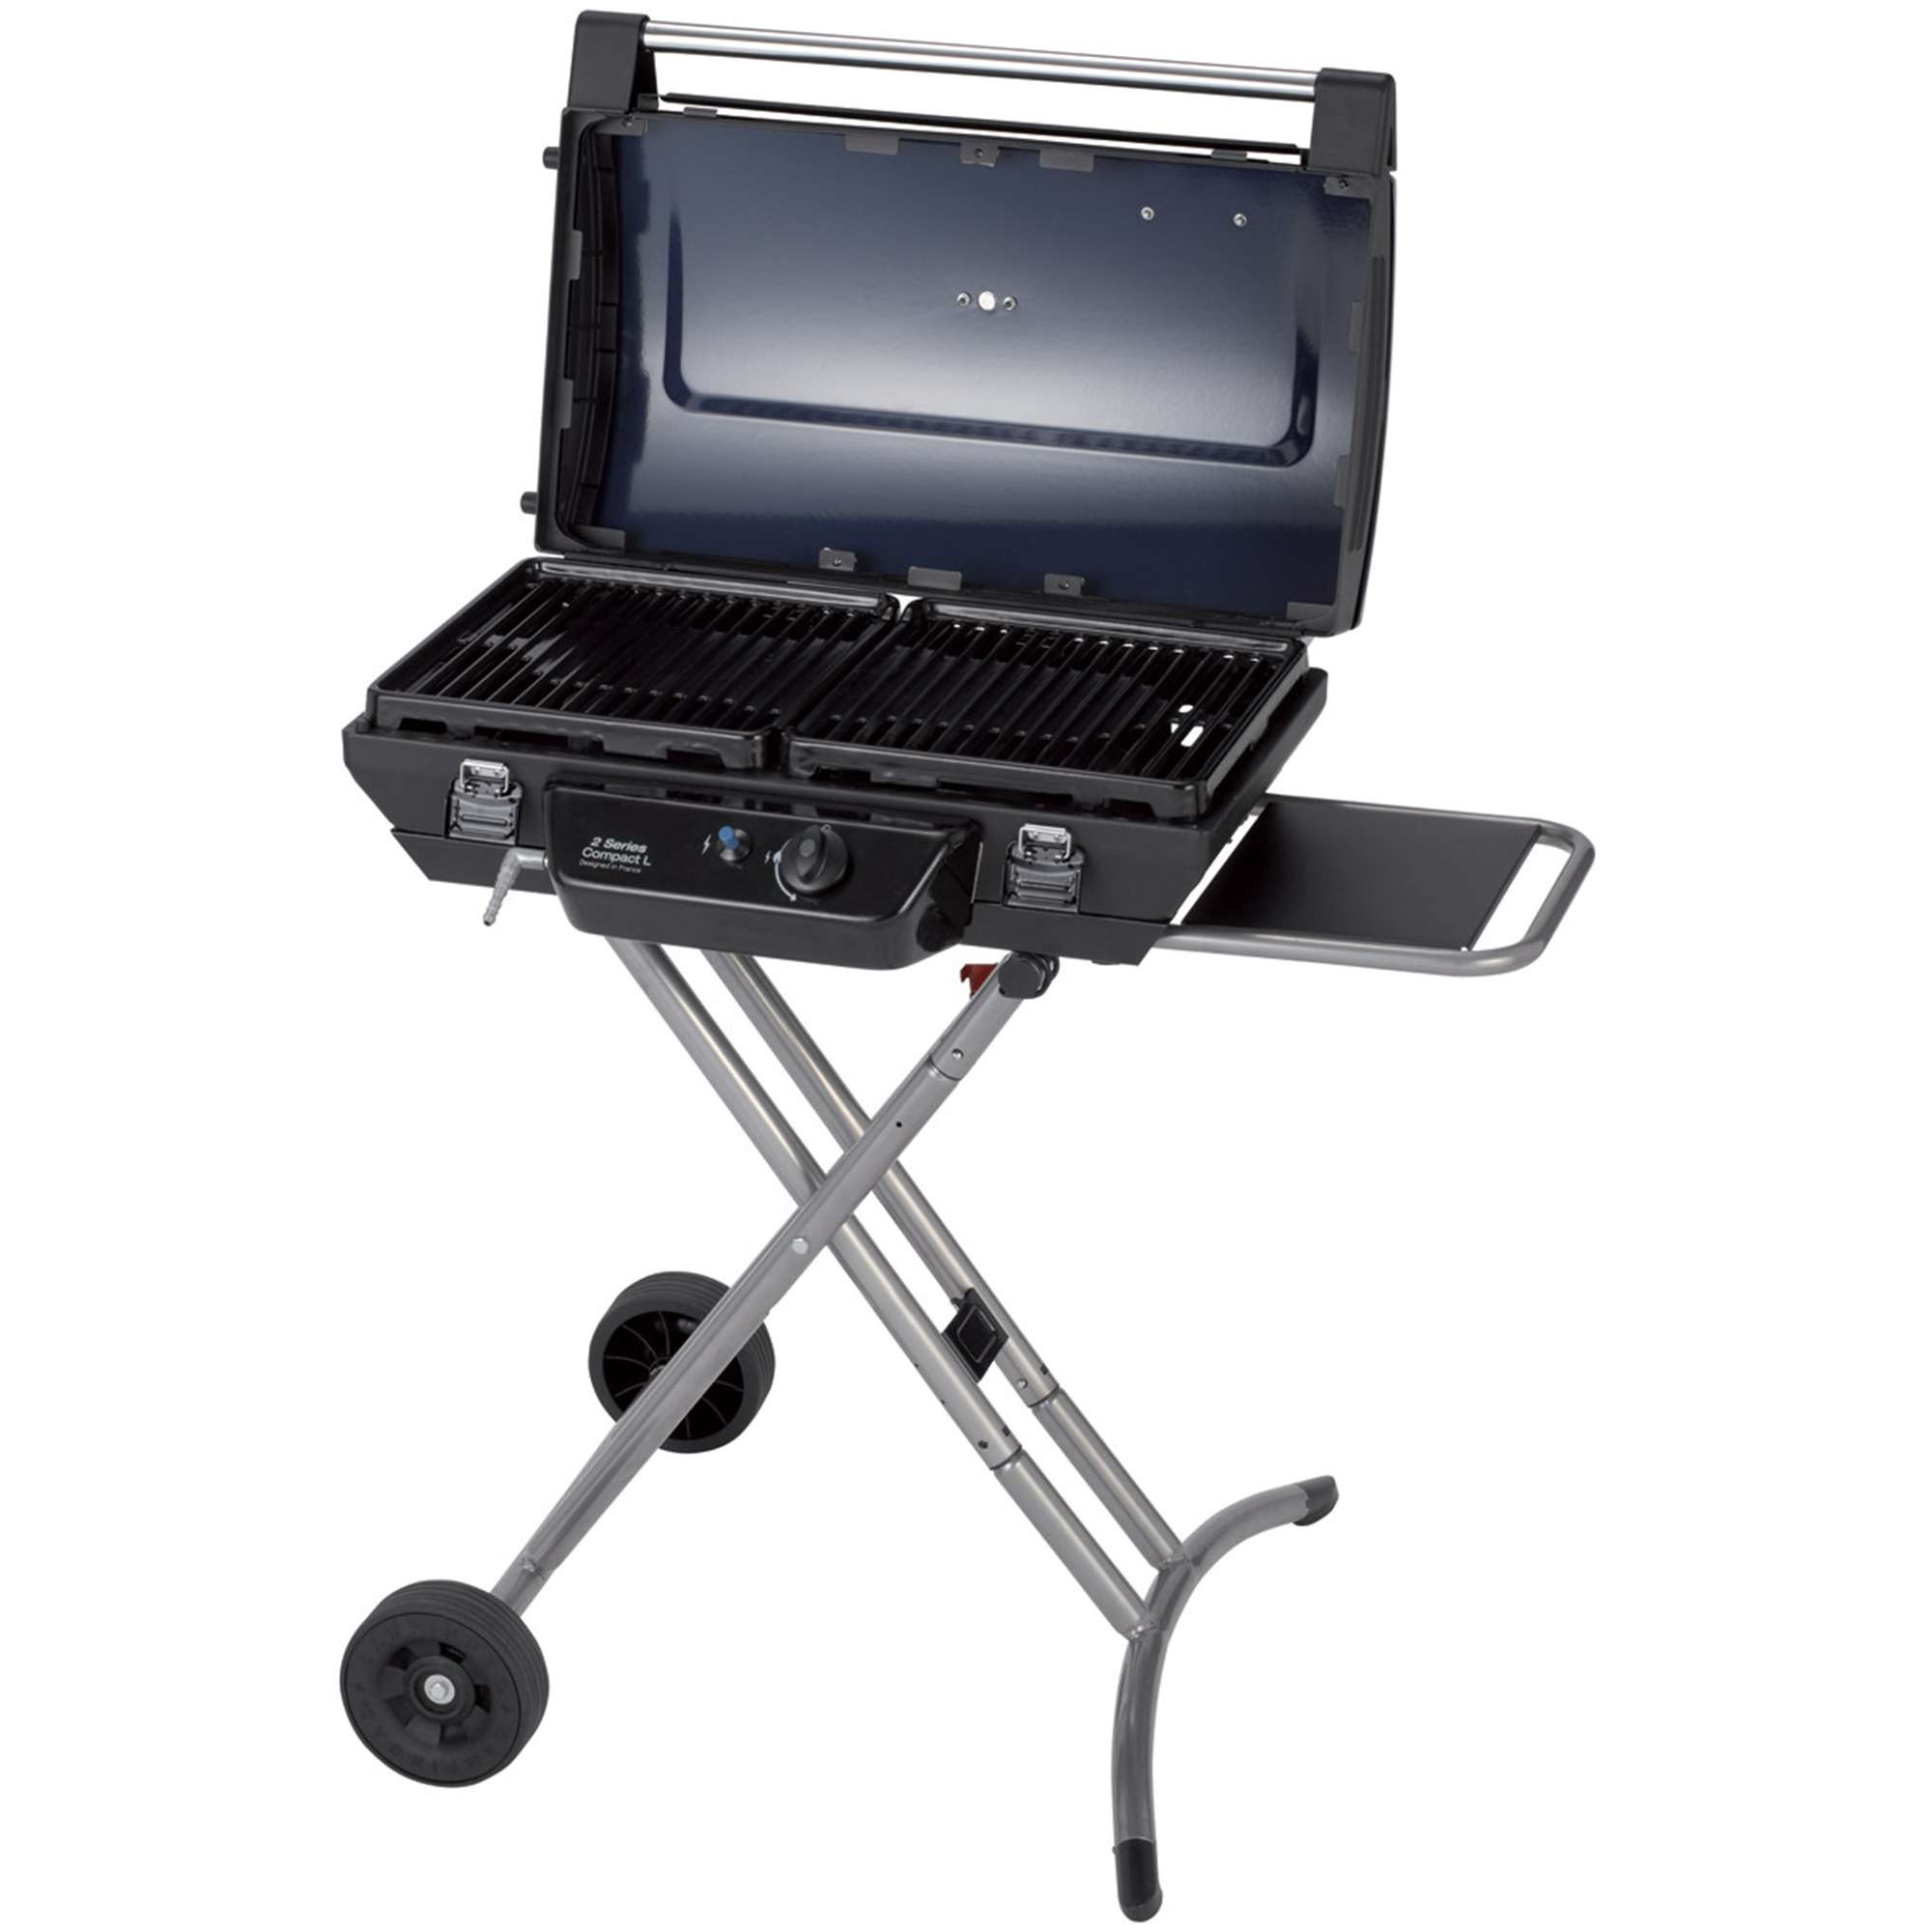 CAMPINGAZ 2 Series Compact L Barbecue